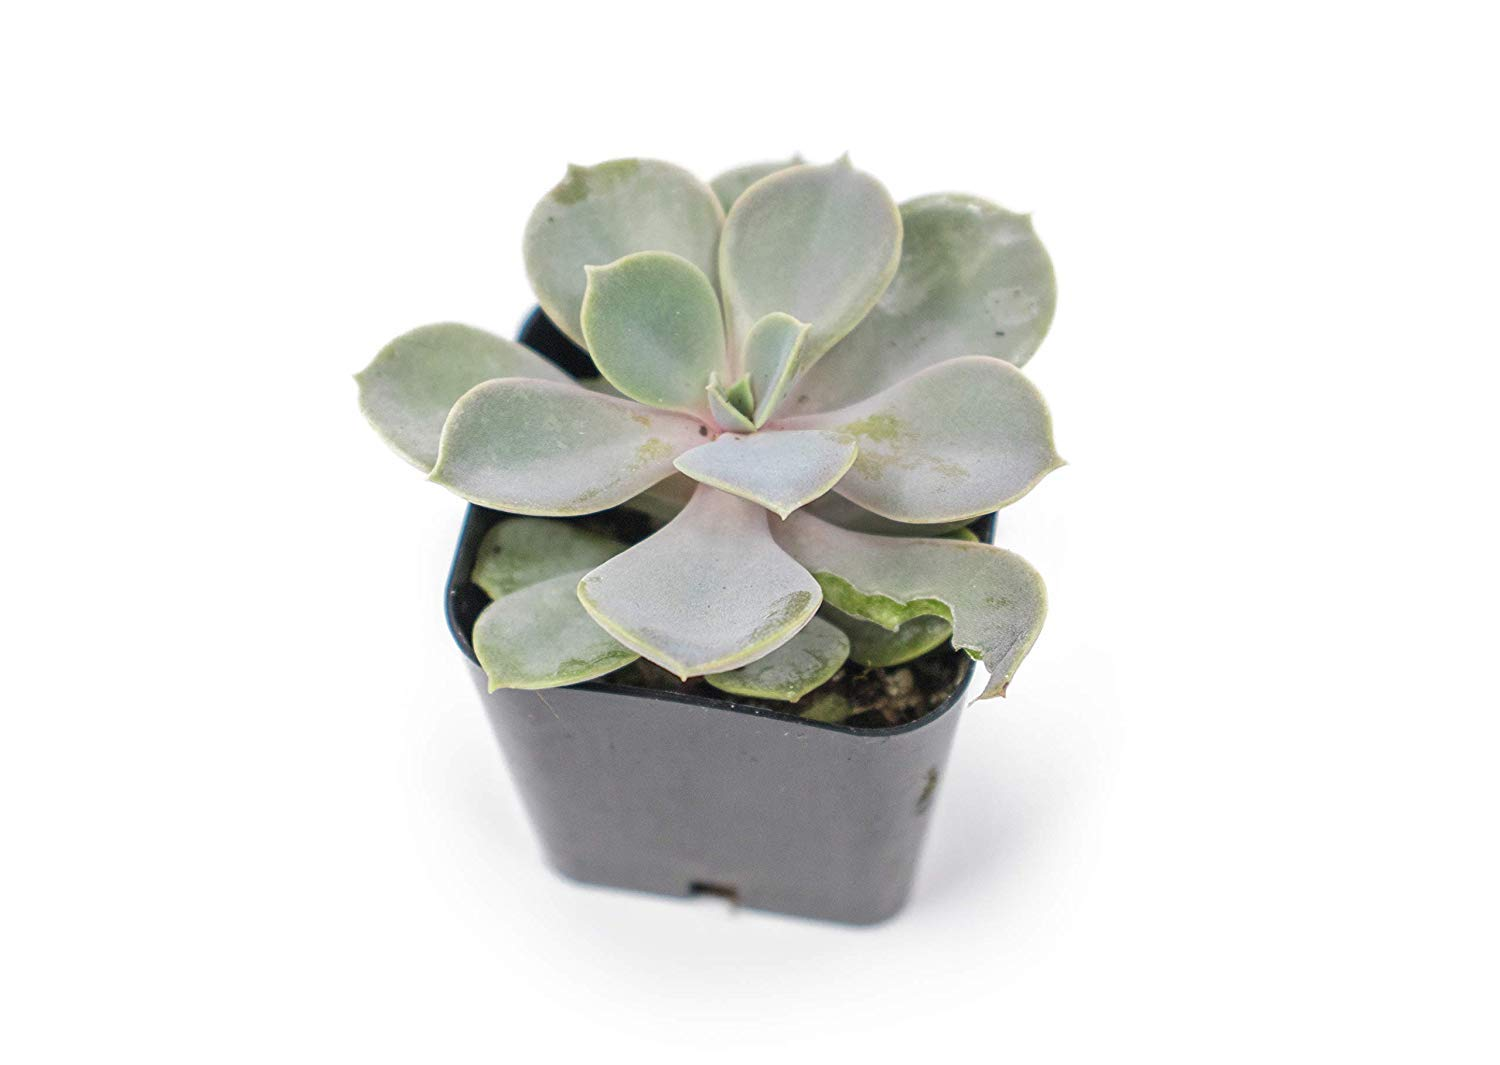 20 Live ''B-Grade'' Succulents | House Plants with Minor Flaws | Healthy Discounted Cheap Succulent Plants in Planter Pots with Soil by Plants for Pets by Plants for Pets (Image #4)